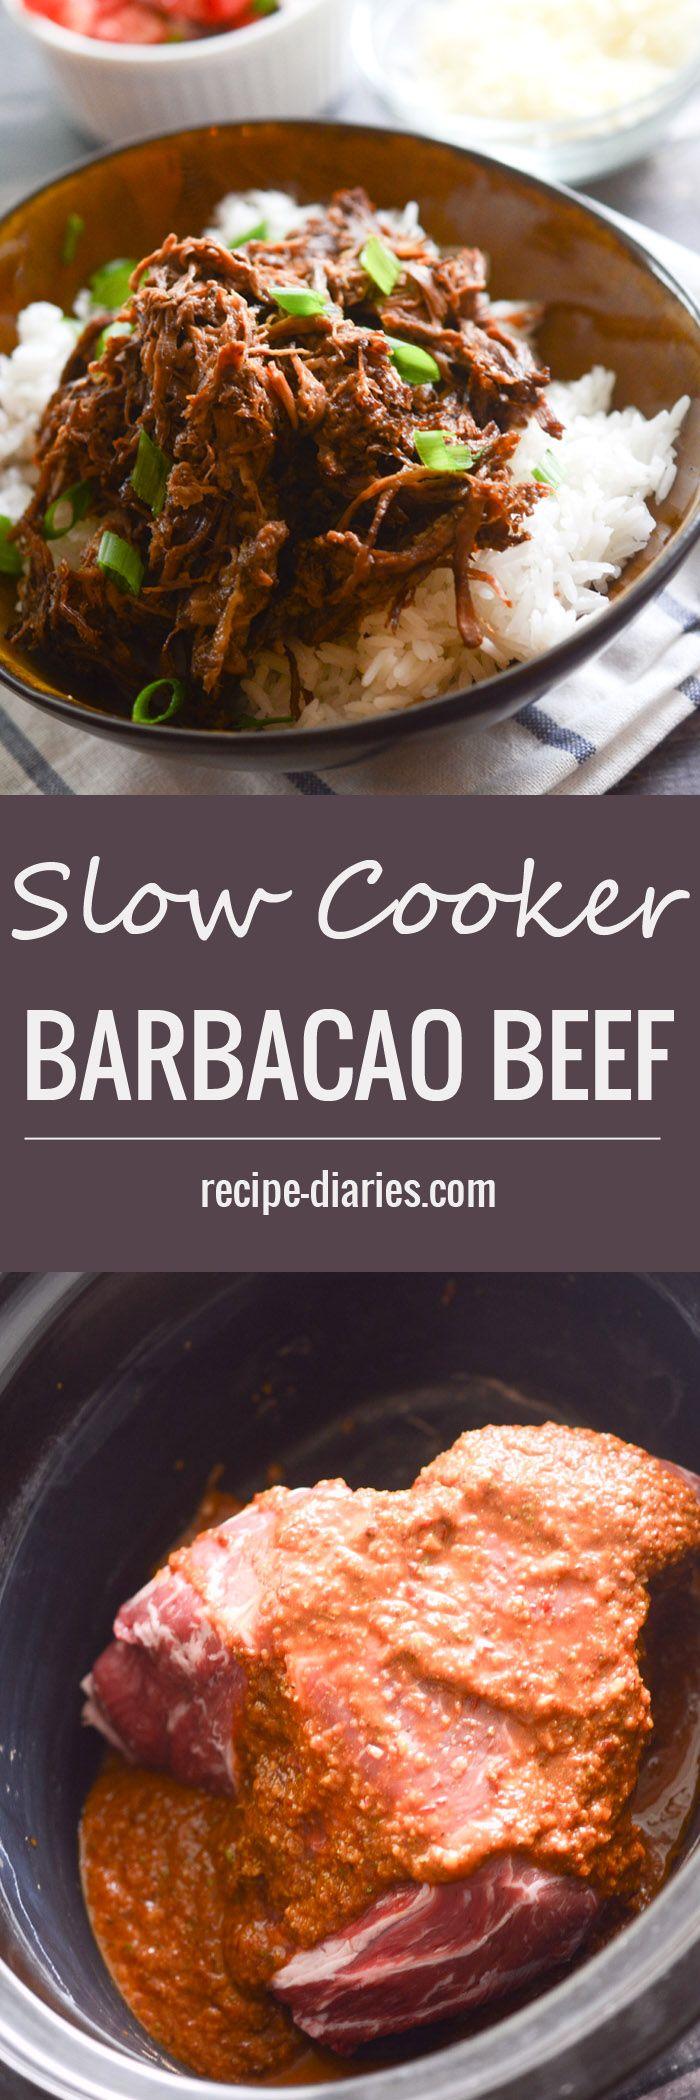 Slow Cooker Barbacao Beef - 4 WWP+ per 1/2 cup serving - Recipe Diaries